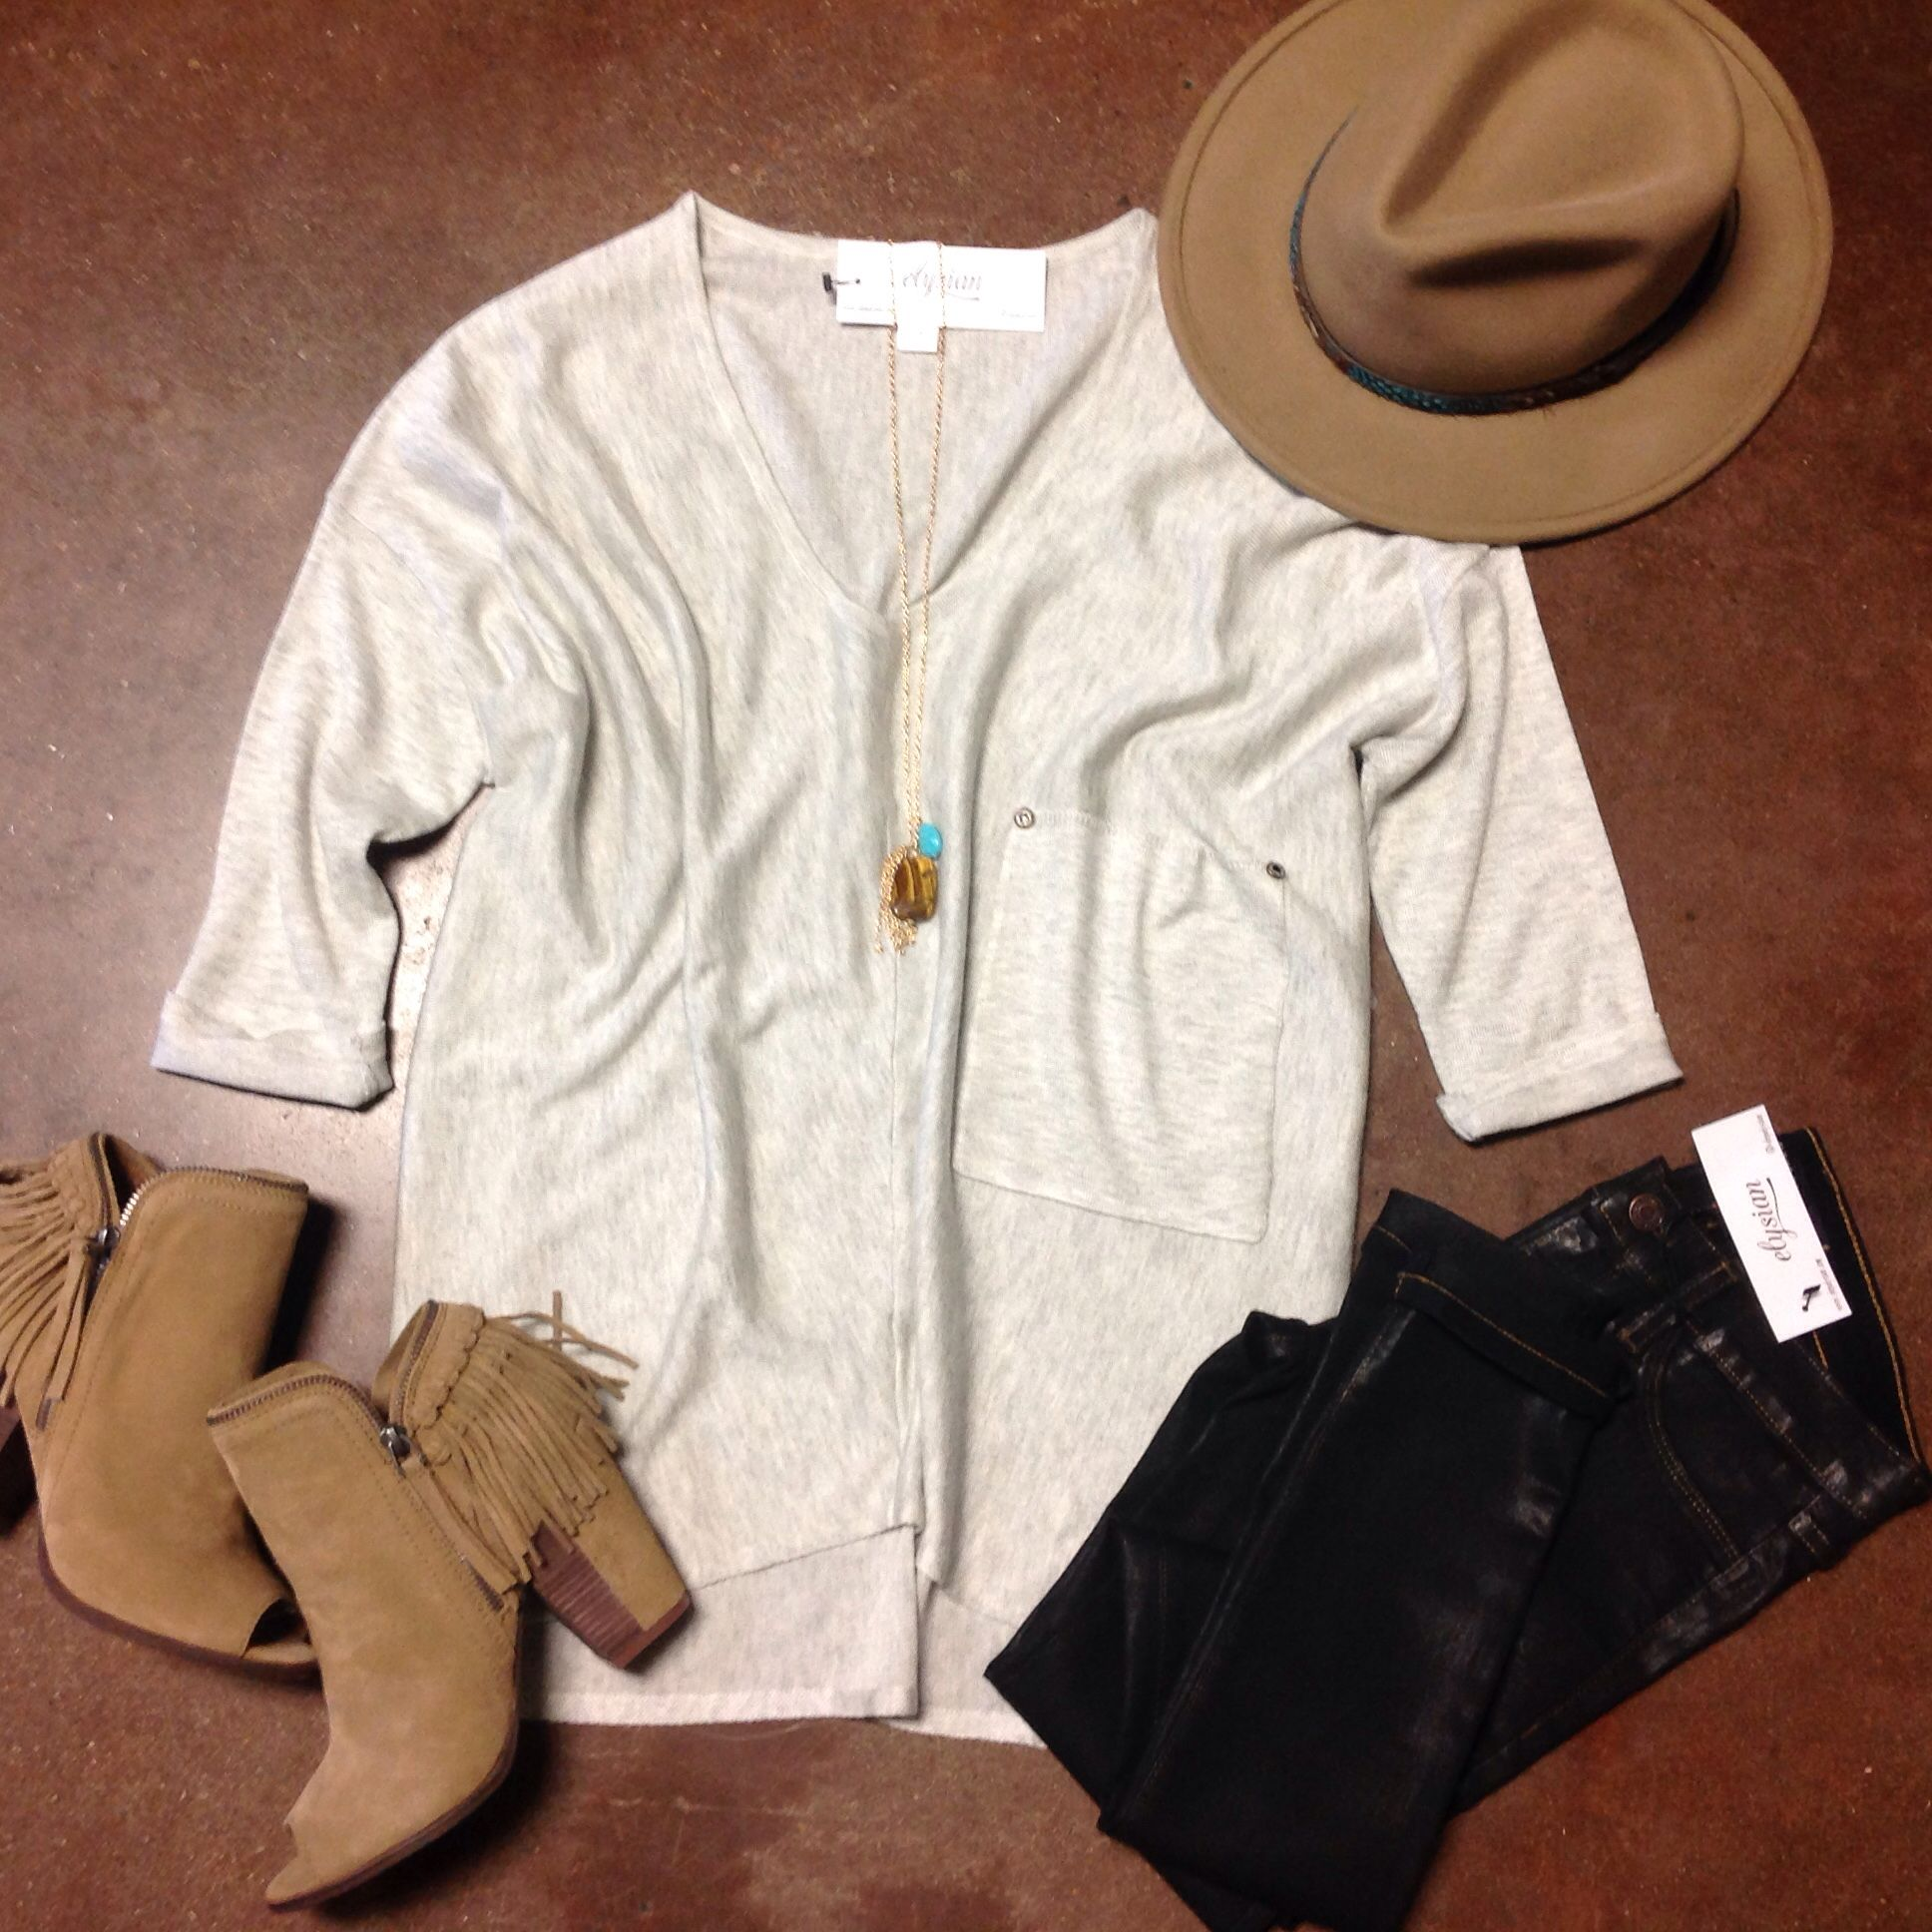 [Obsessed w/ Pockets] Light Smoke Raven Knit $54 Coated Black Jegging $68 Stoned Tassel Chain $24 @shopdolcevita Silvia Cognac Bootie $120 (Online) Feathered Fedora $42 #dolcevita #fedora #elysianlove